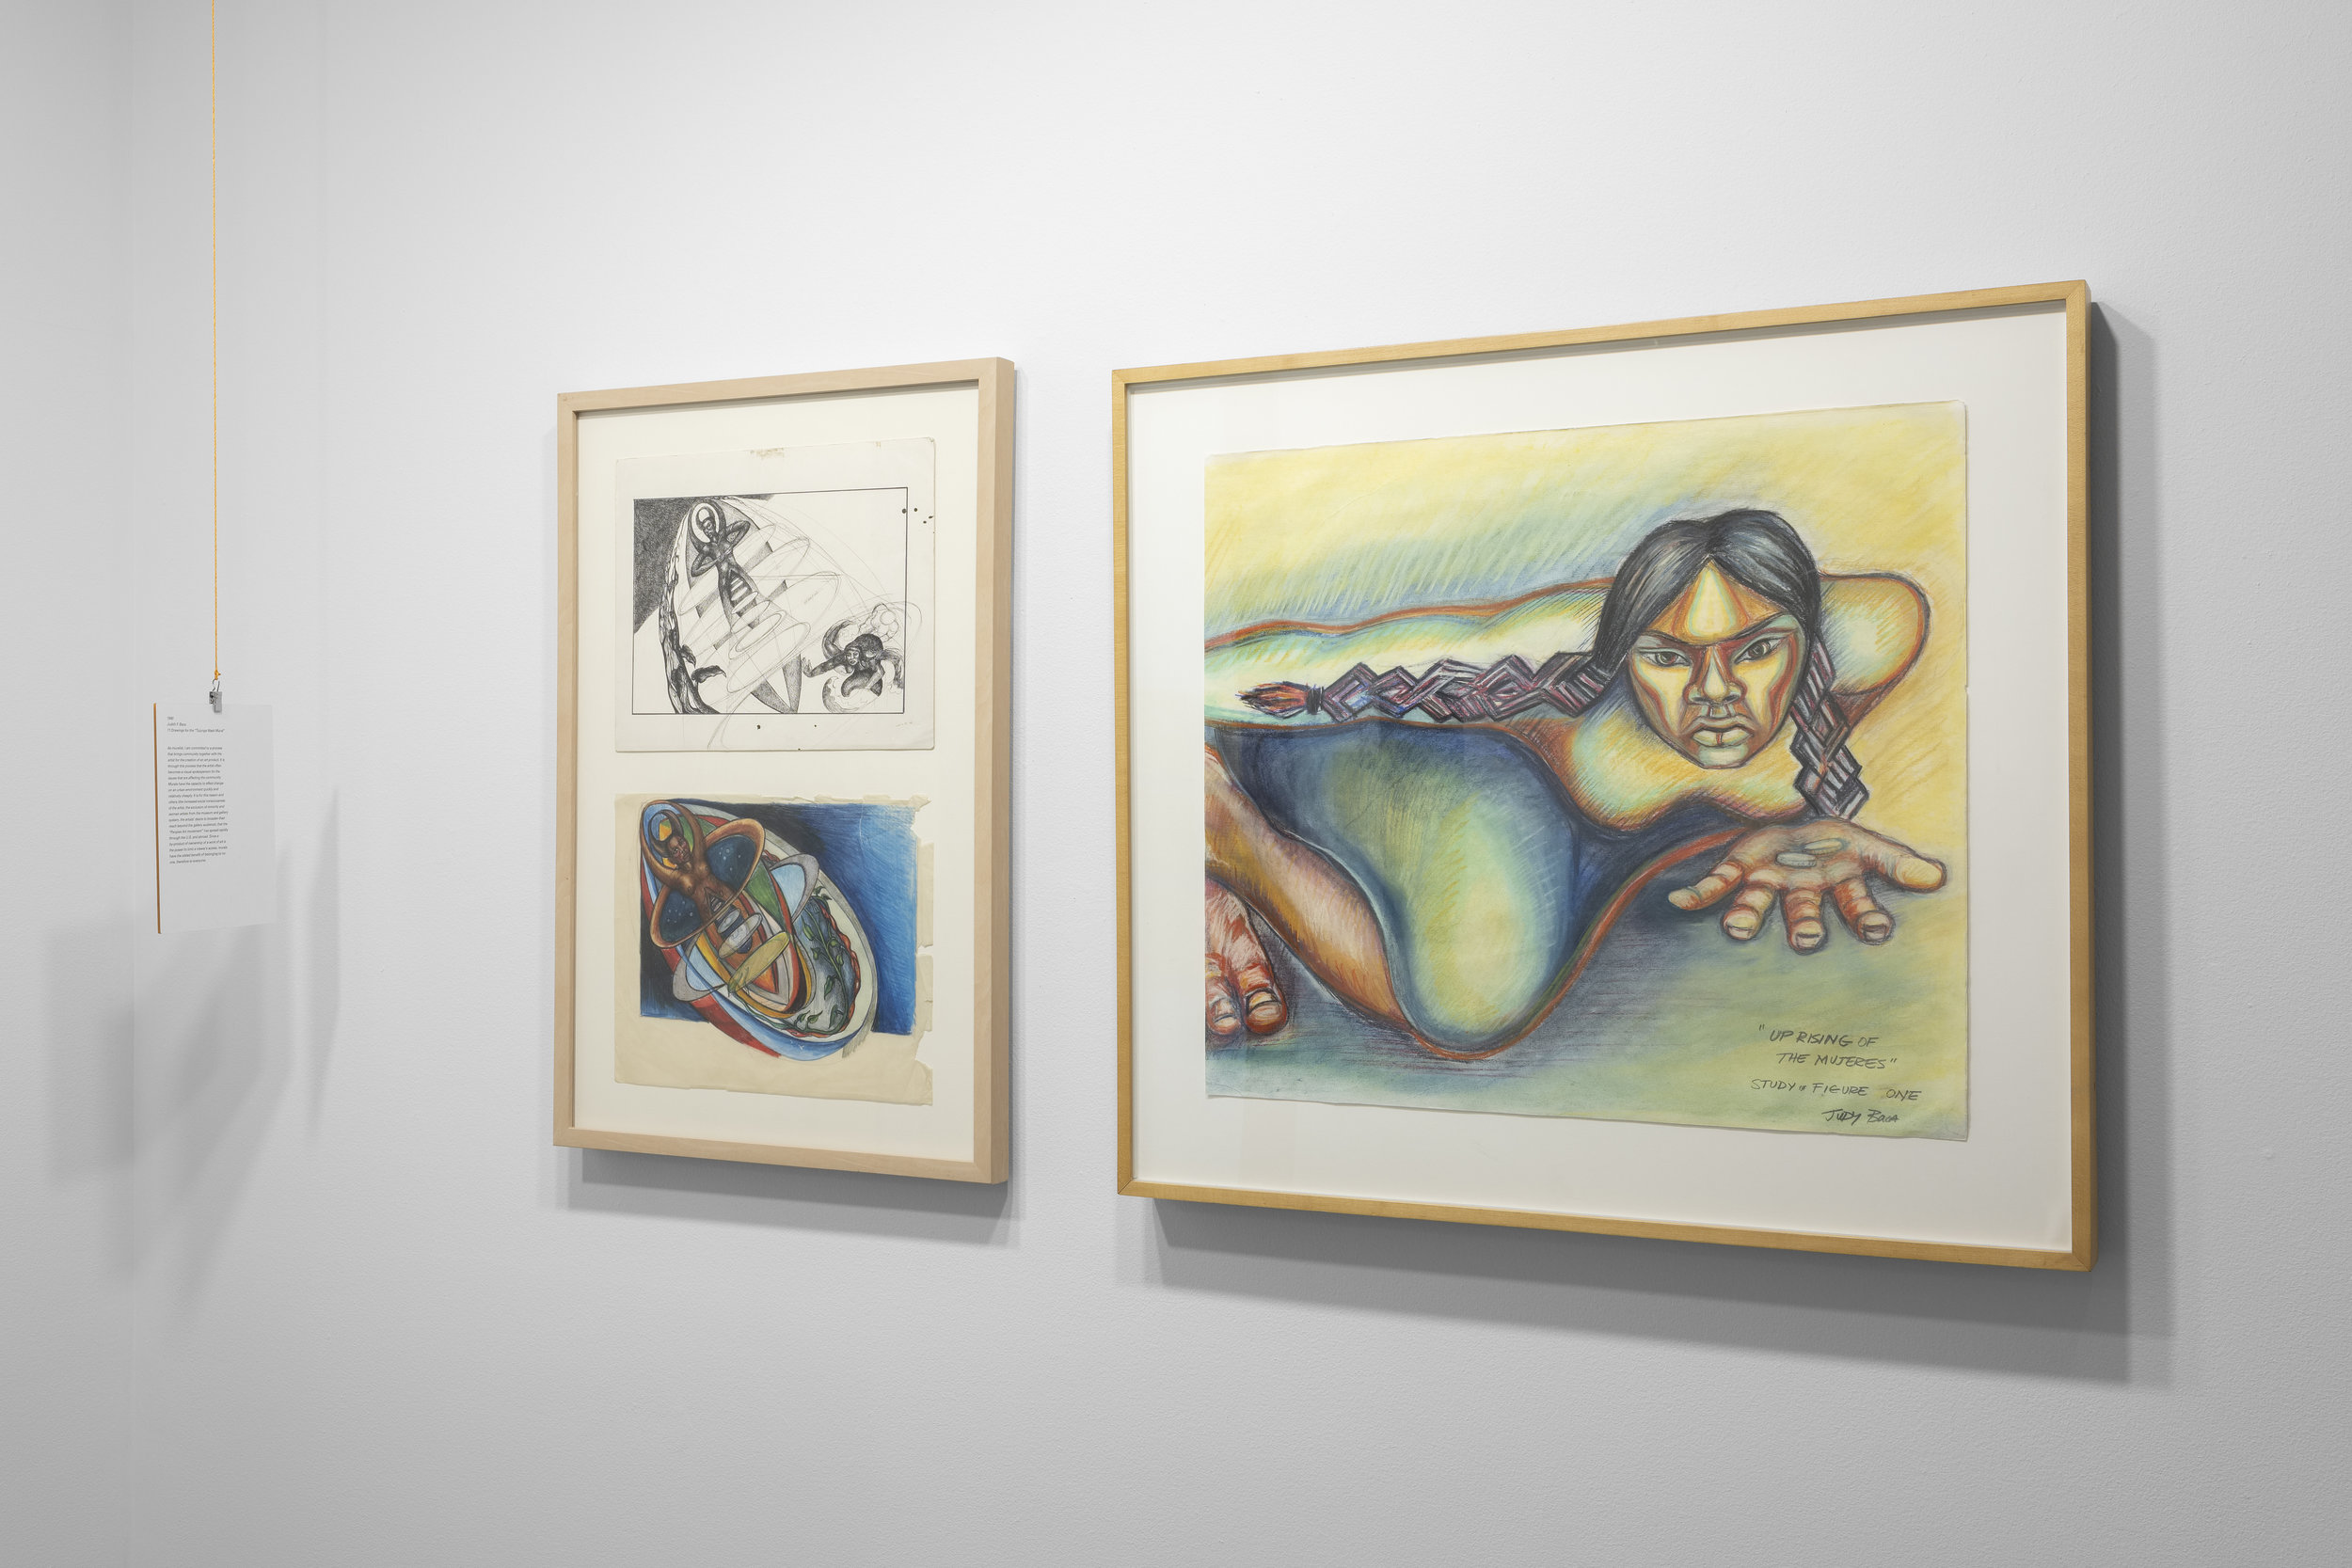 """Judith Baca, """"When God Was Woman,"""" 1982 (left) and Judith Baca """"Uprising of the Mujeres,"""" 1979."""